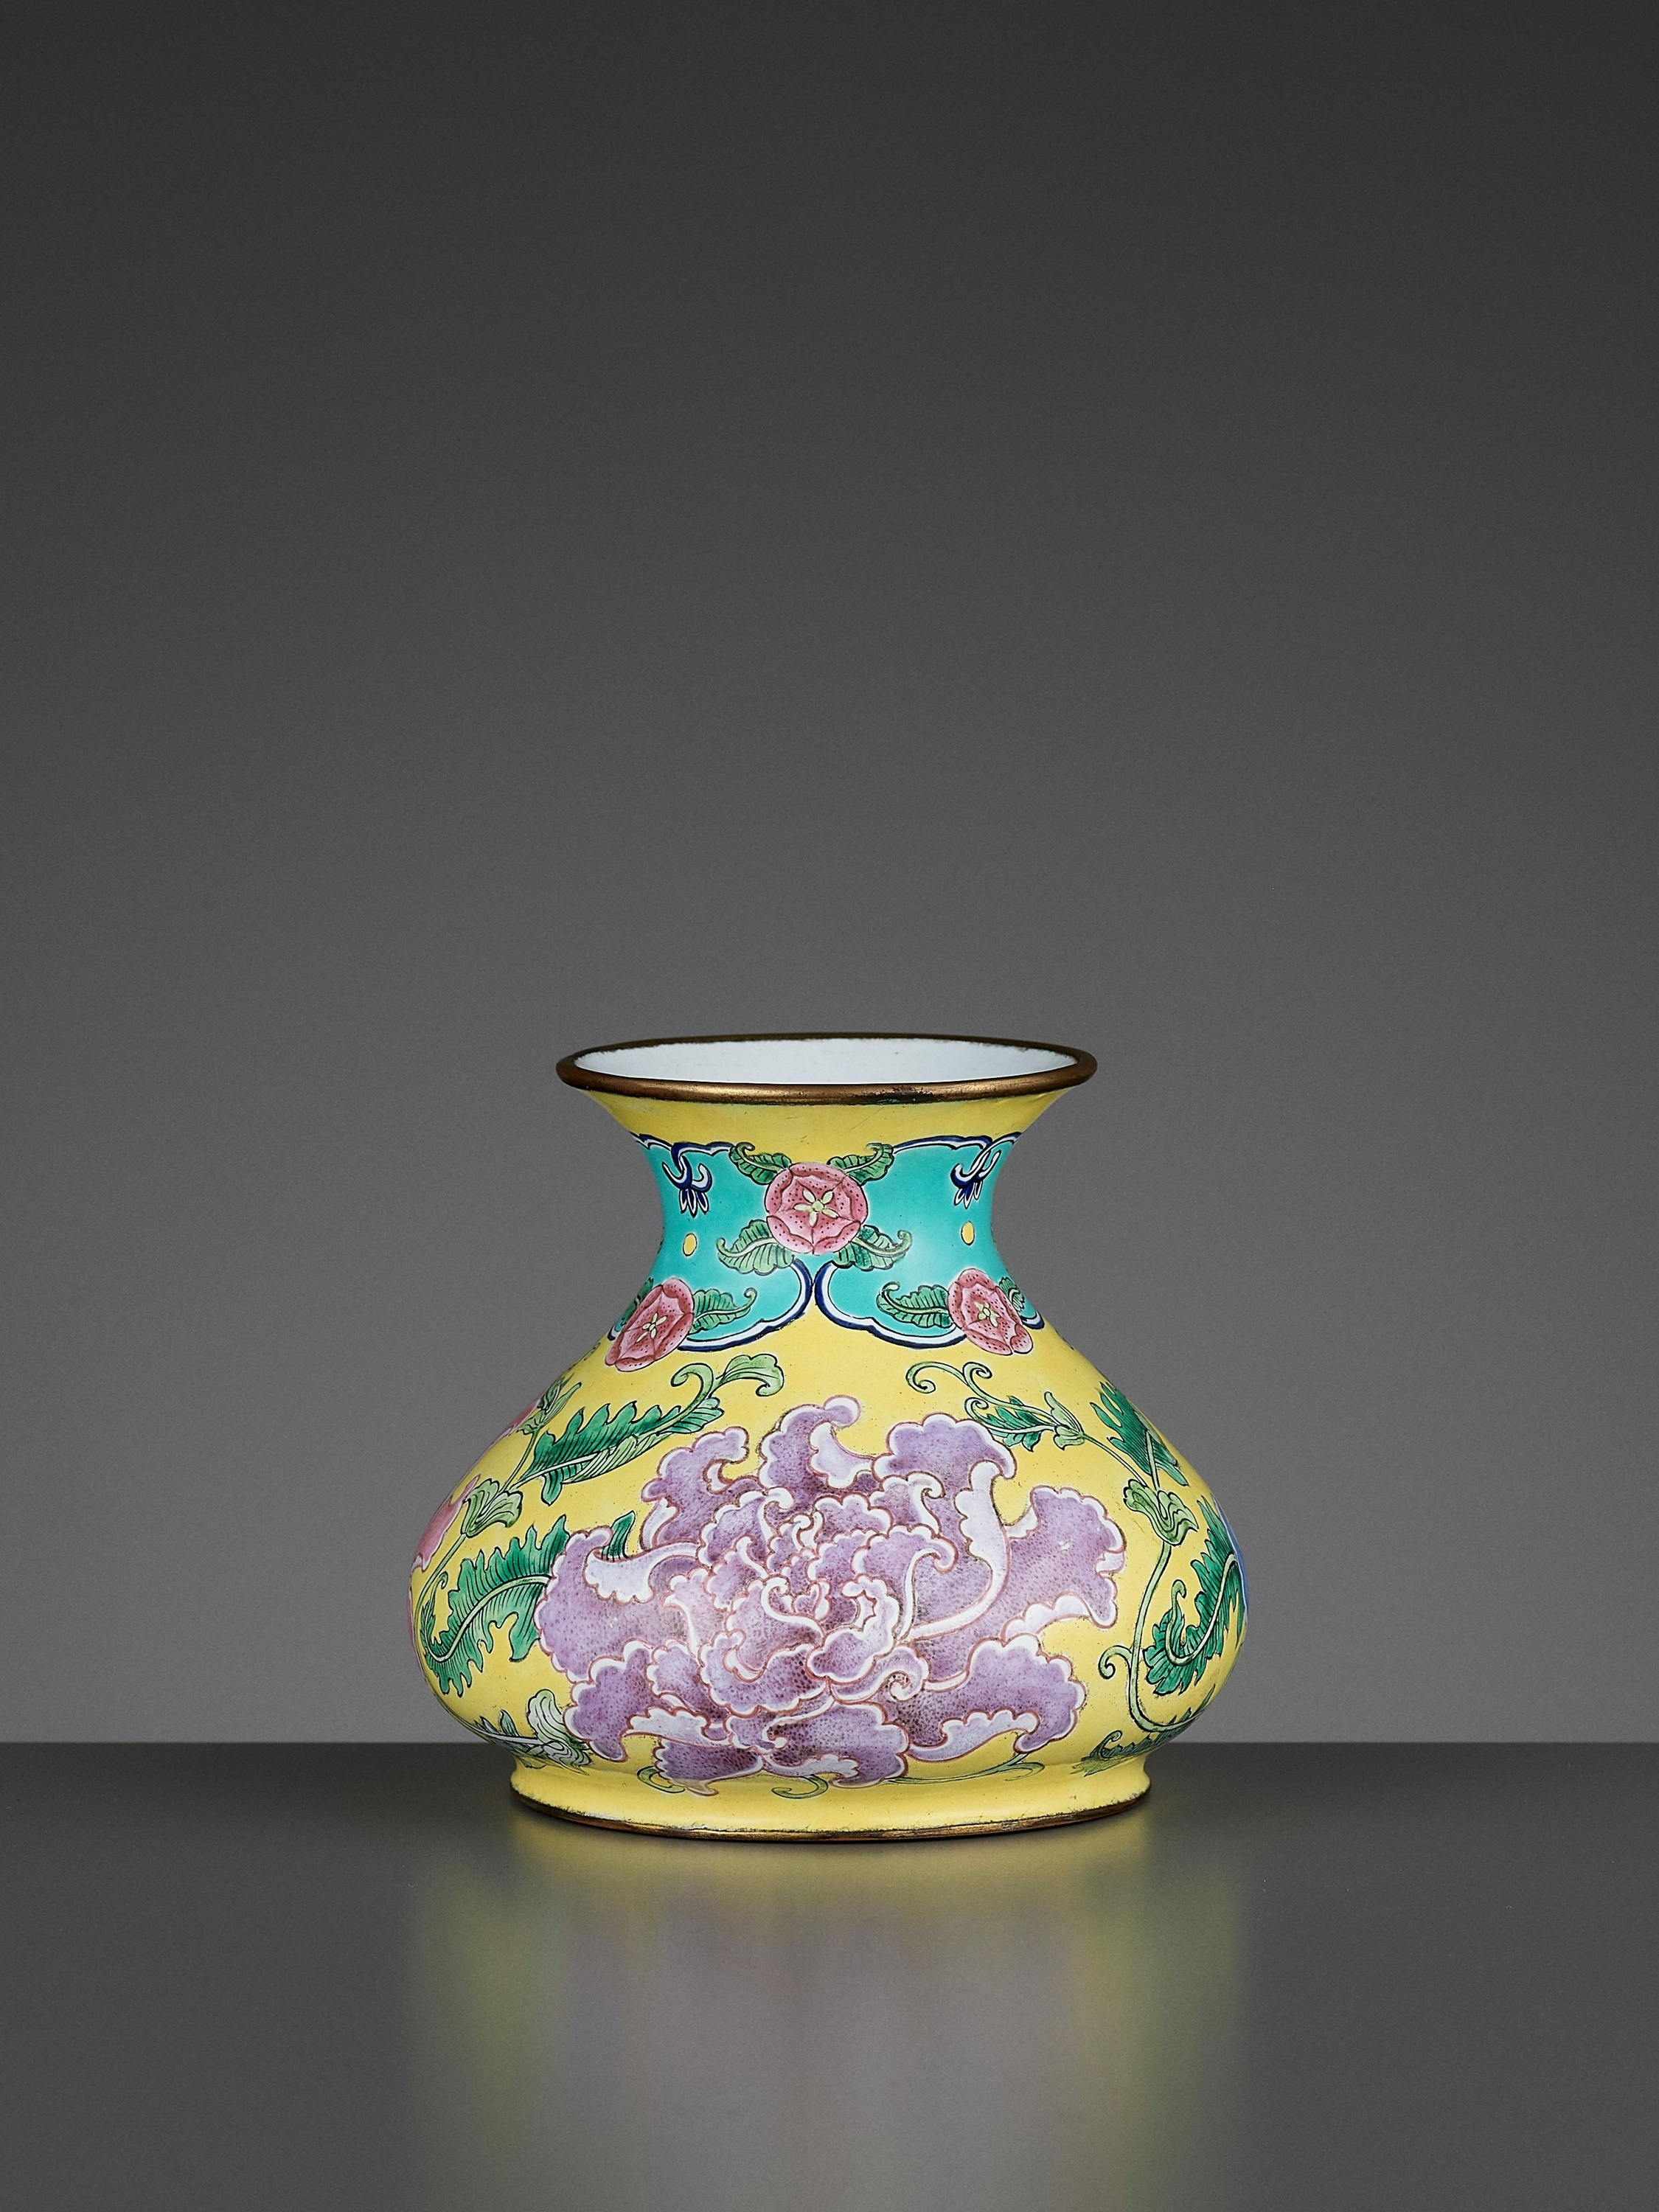 A BEIJING ENAMEL ON COPPER 'PEONIES' WATER POT, QIANLONG MARK AND PERIOD